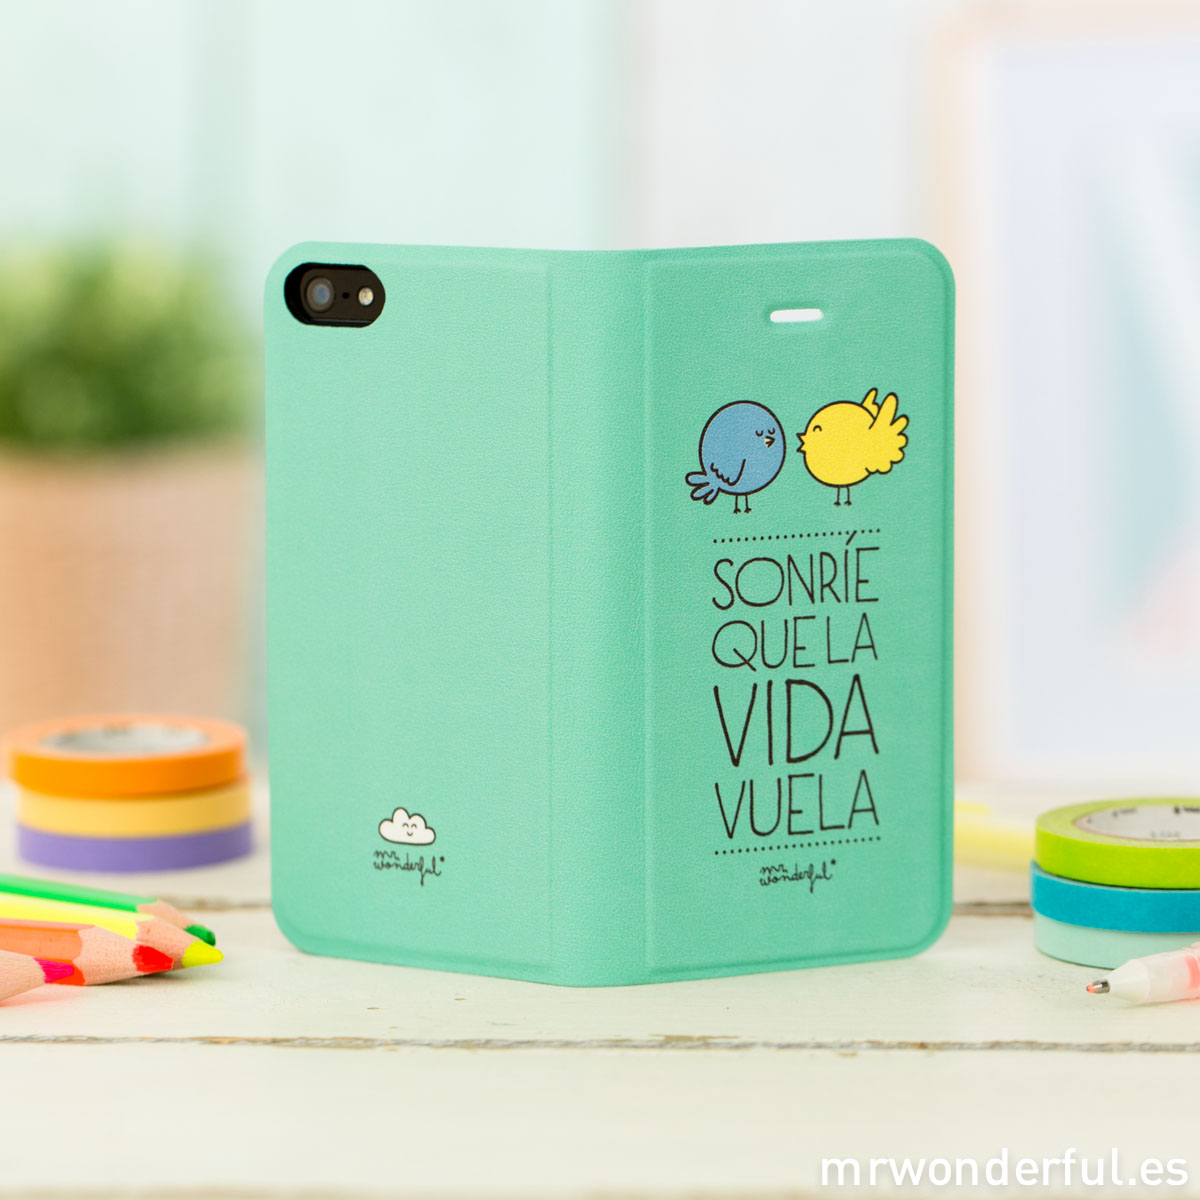 mrwonderful_MRFOL003_funda-mint-iphone-5-5s_sonrie-vida-vuela-21